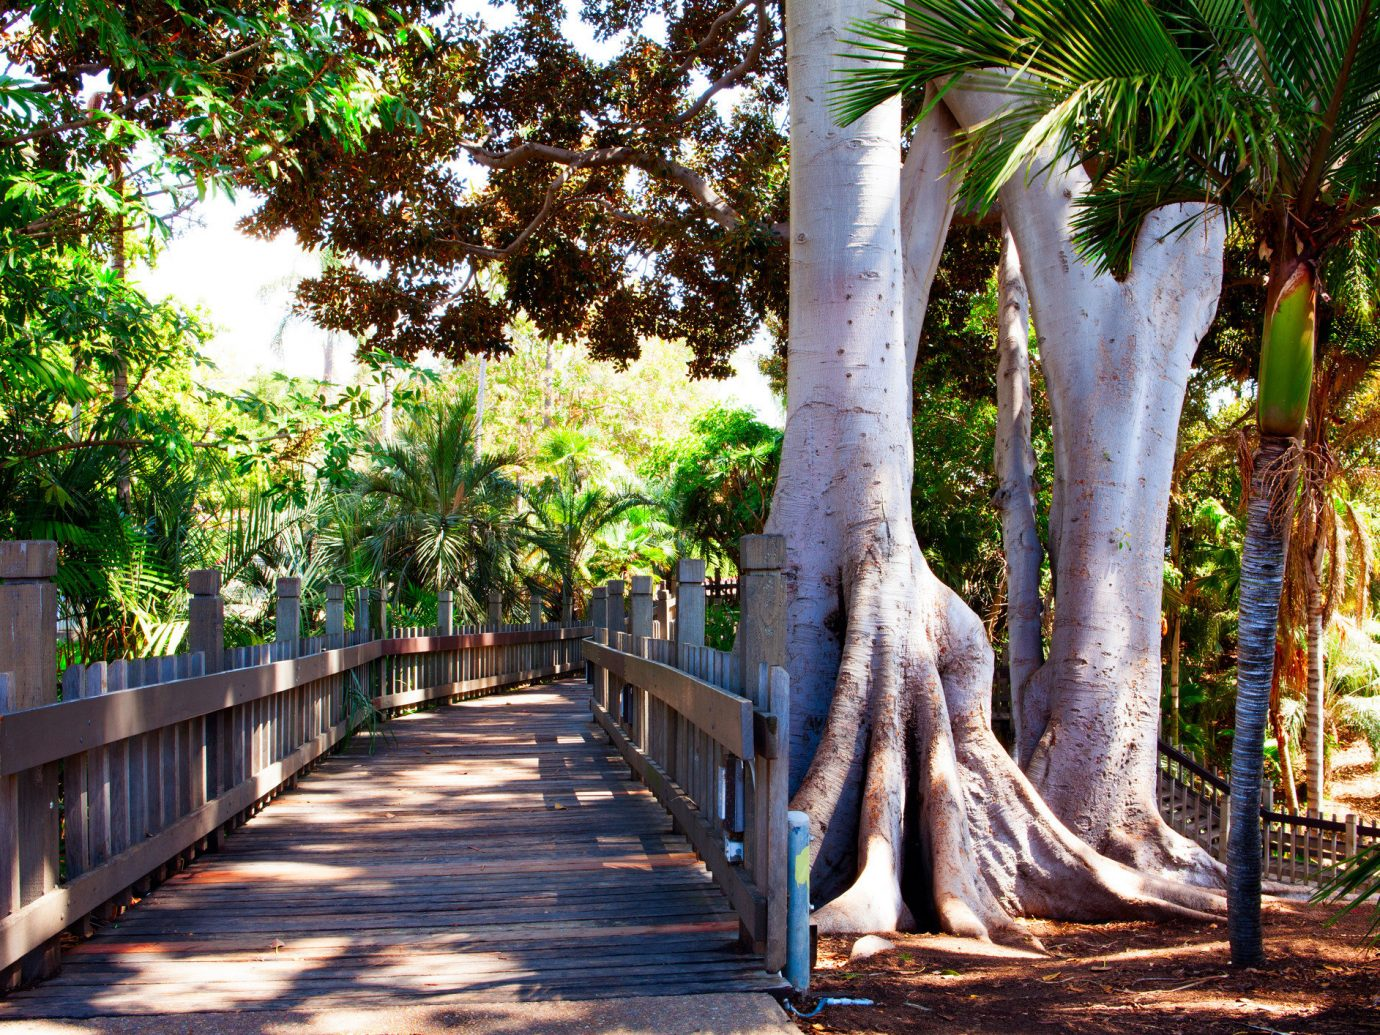 Travel Tips tree outdoor ground plant arecales flora park leaf flower walkway outdoor structure leisure Garden palm tree recreation spring plantation branch botanical garden shade surrounded